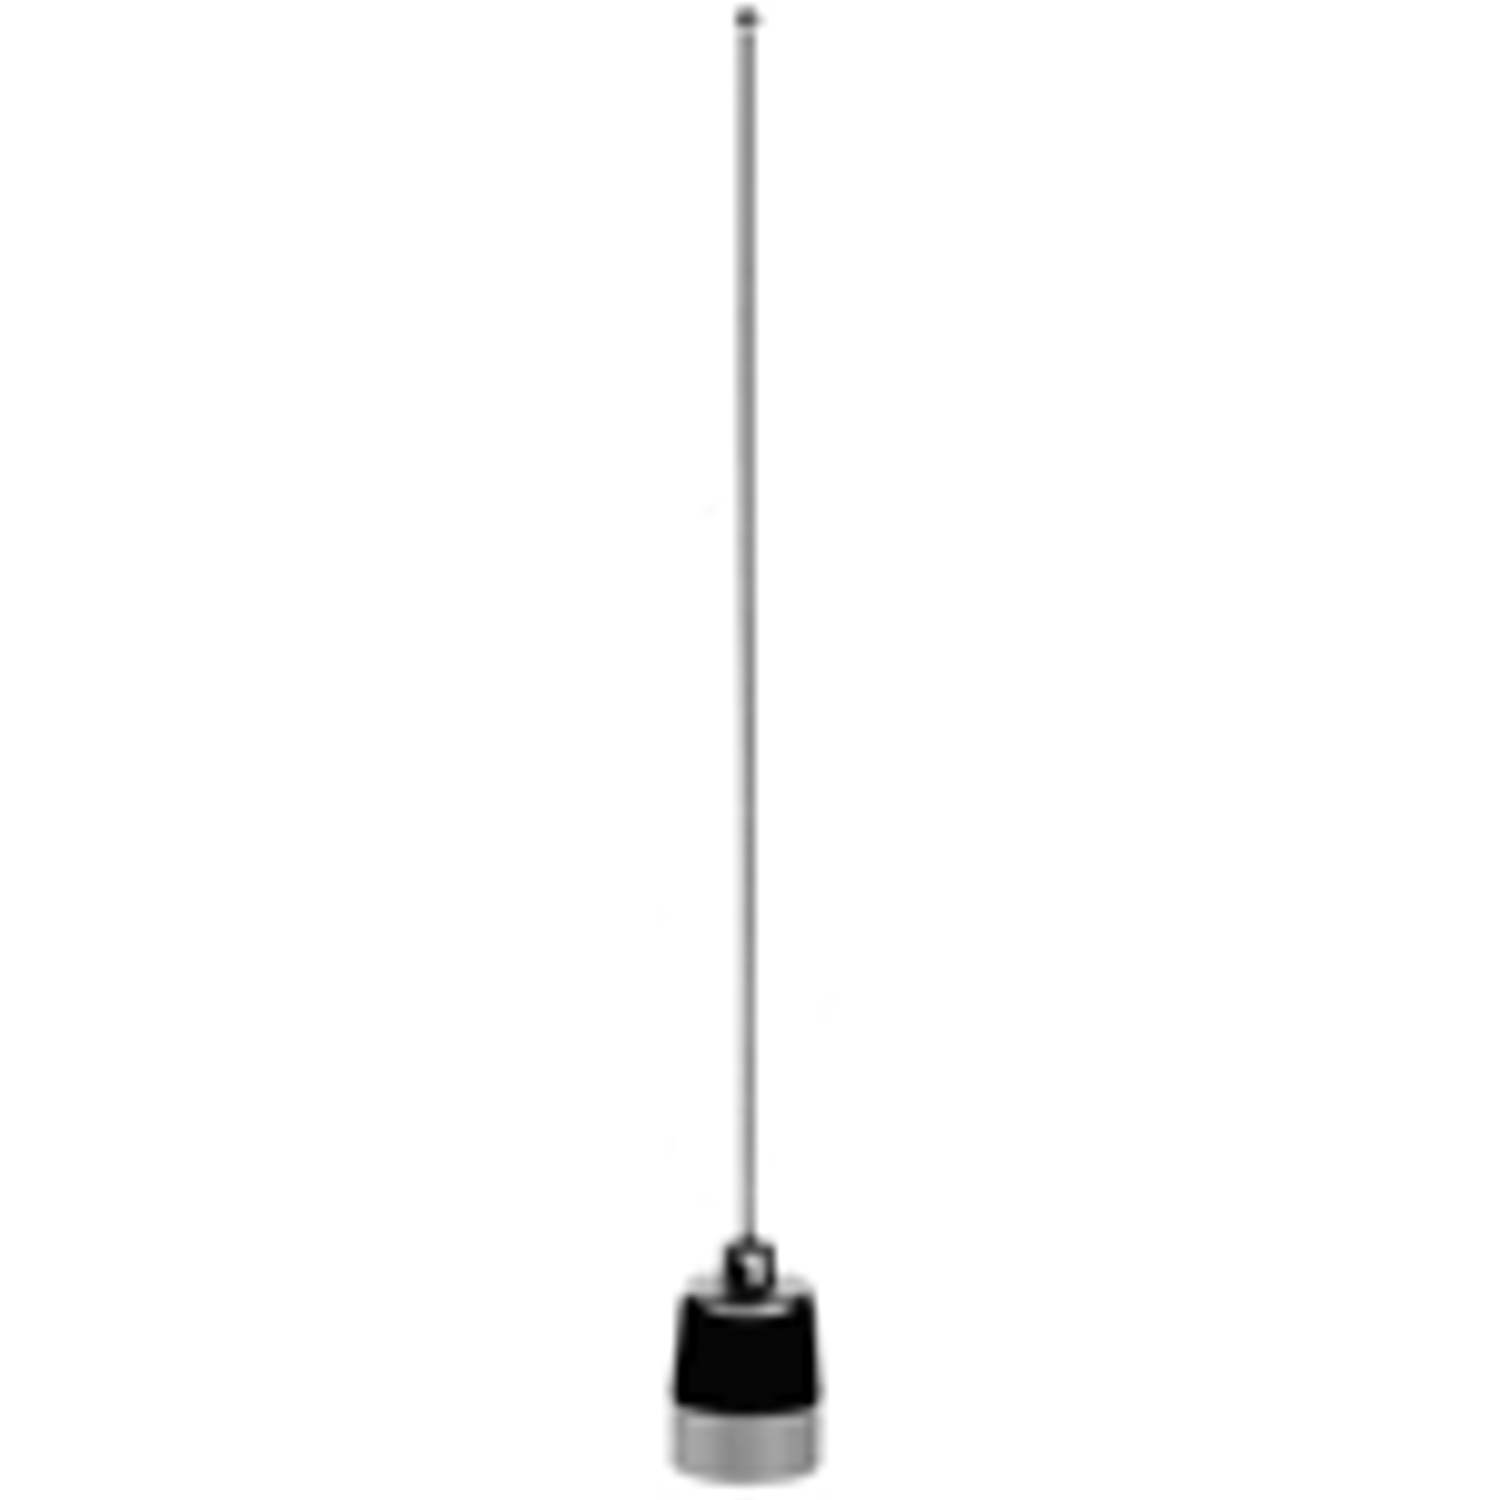 144-174 MHZ, 3DB, 5/8 WAVE ANTENNA WITH SPRING